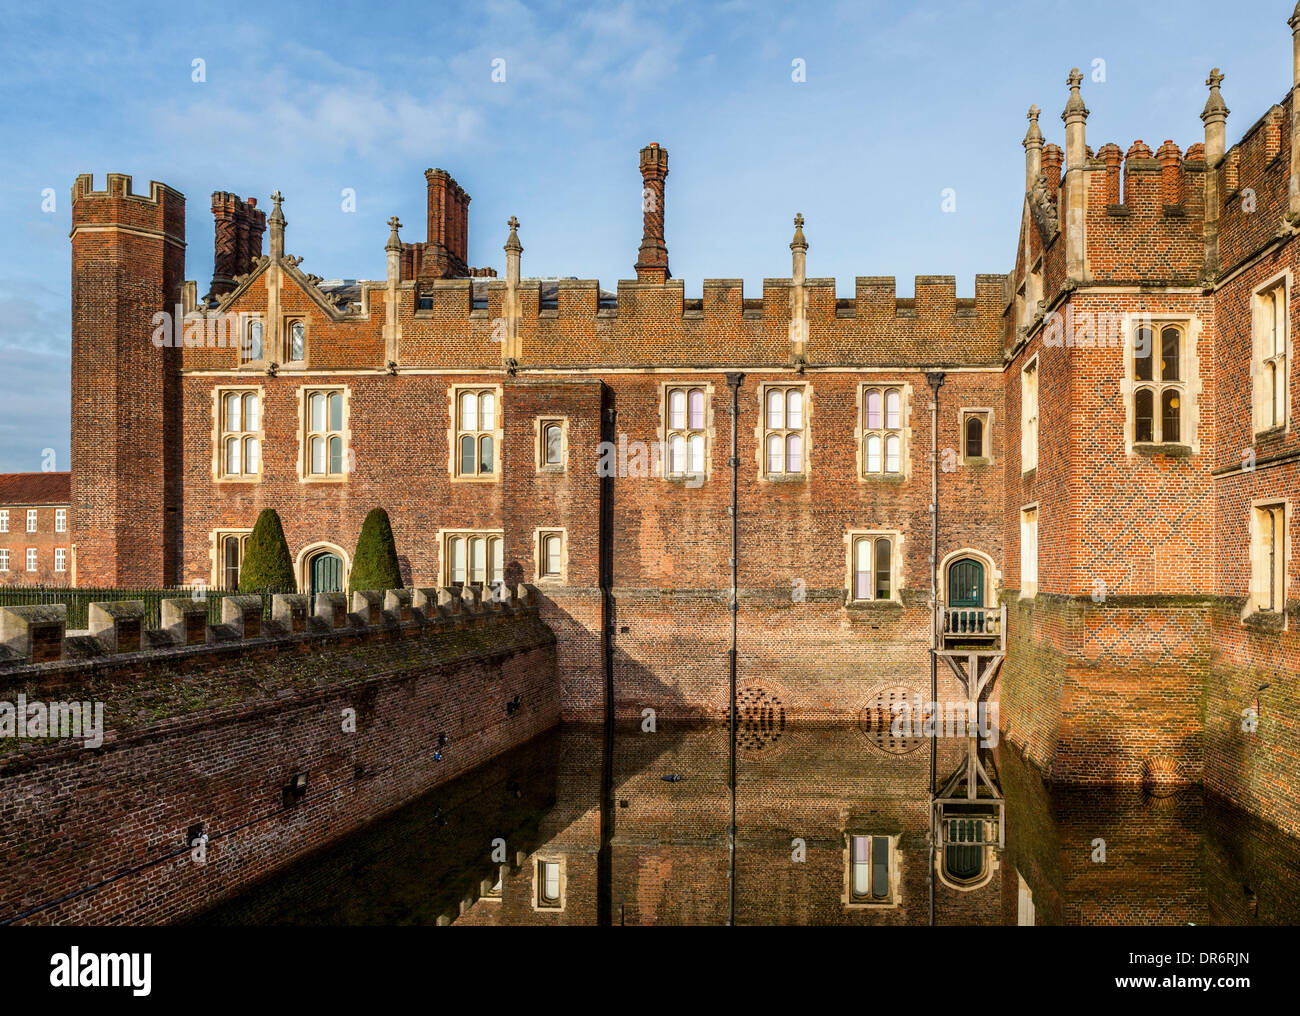 London, UK, 20th January,2014. The dry moat at Hampton Court Palace contains water after the recent heavy rains. The dry moat contains the lights that illuminate the front of the Palace and visitors are enjoying the unusual sight of a water-filled moat. Credit:  Eden Breitz/Alamy Live News - Stock Image